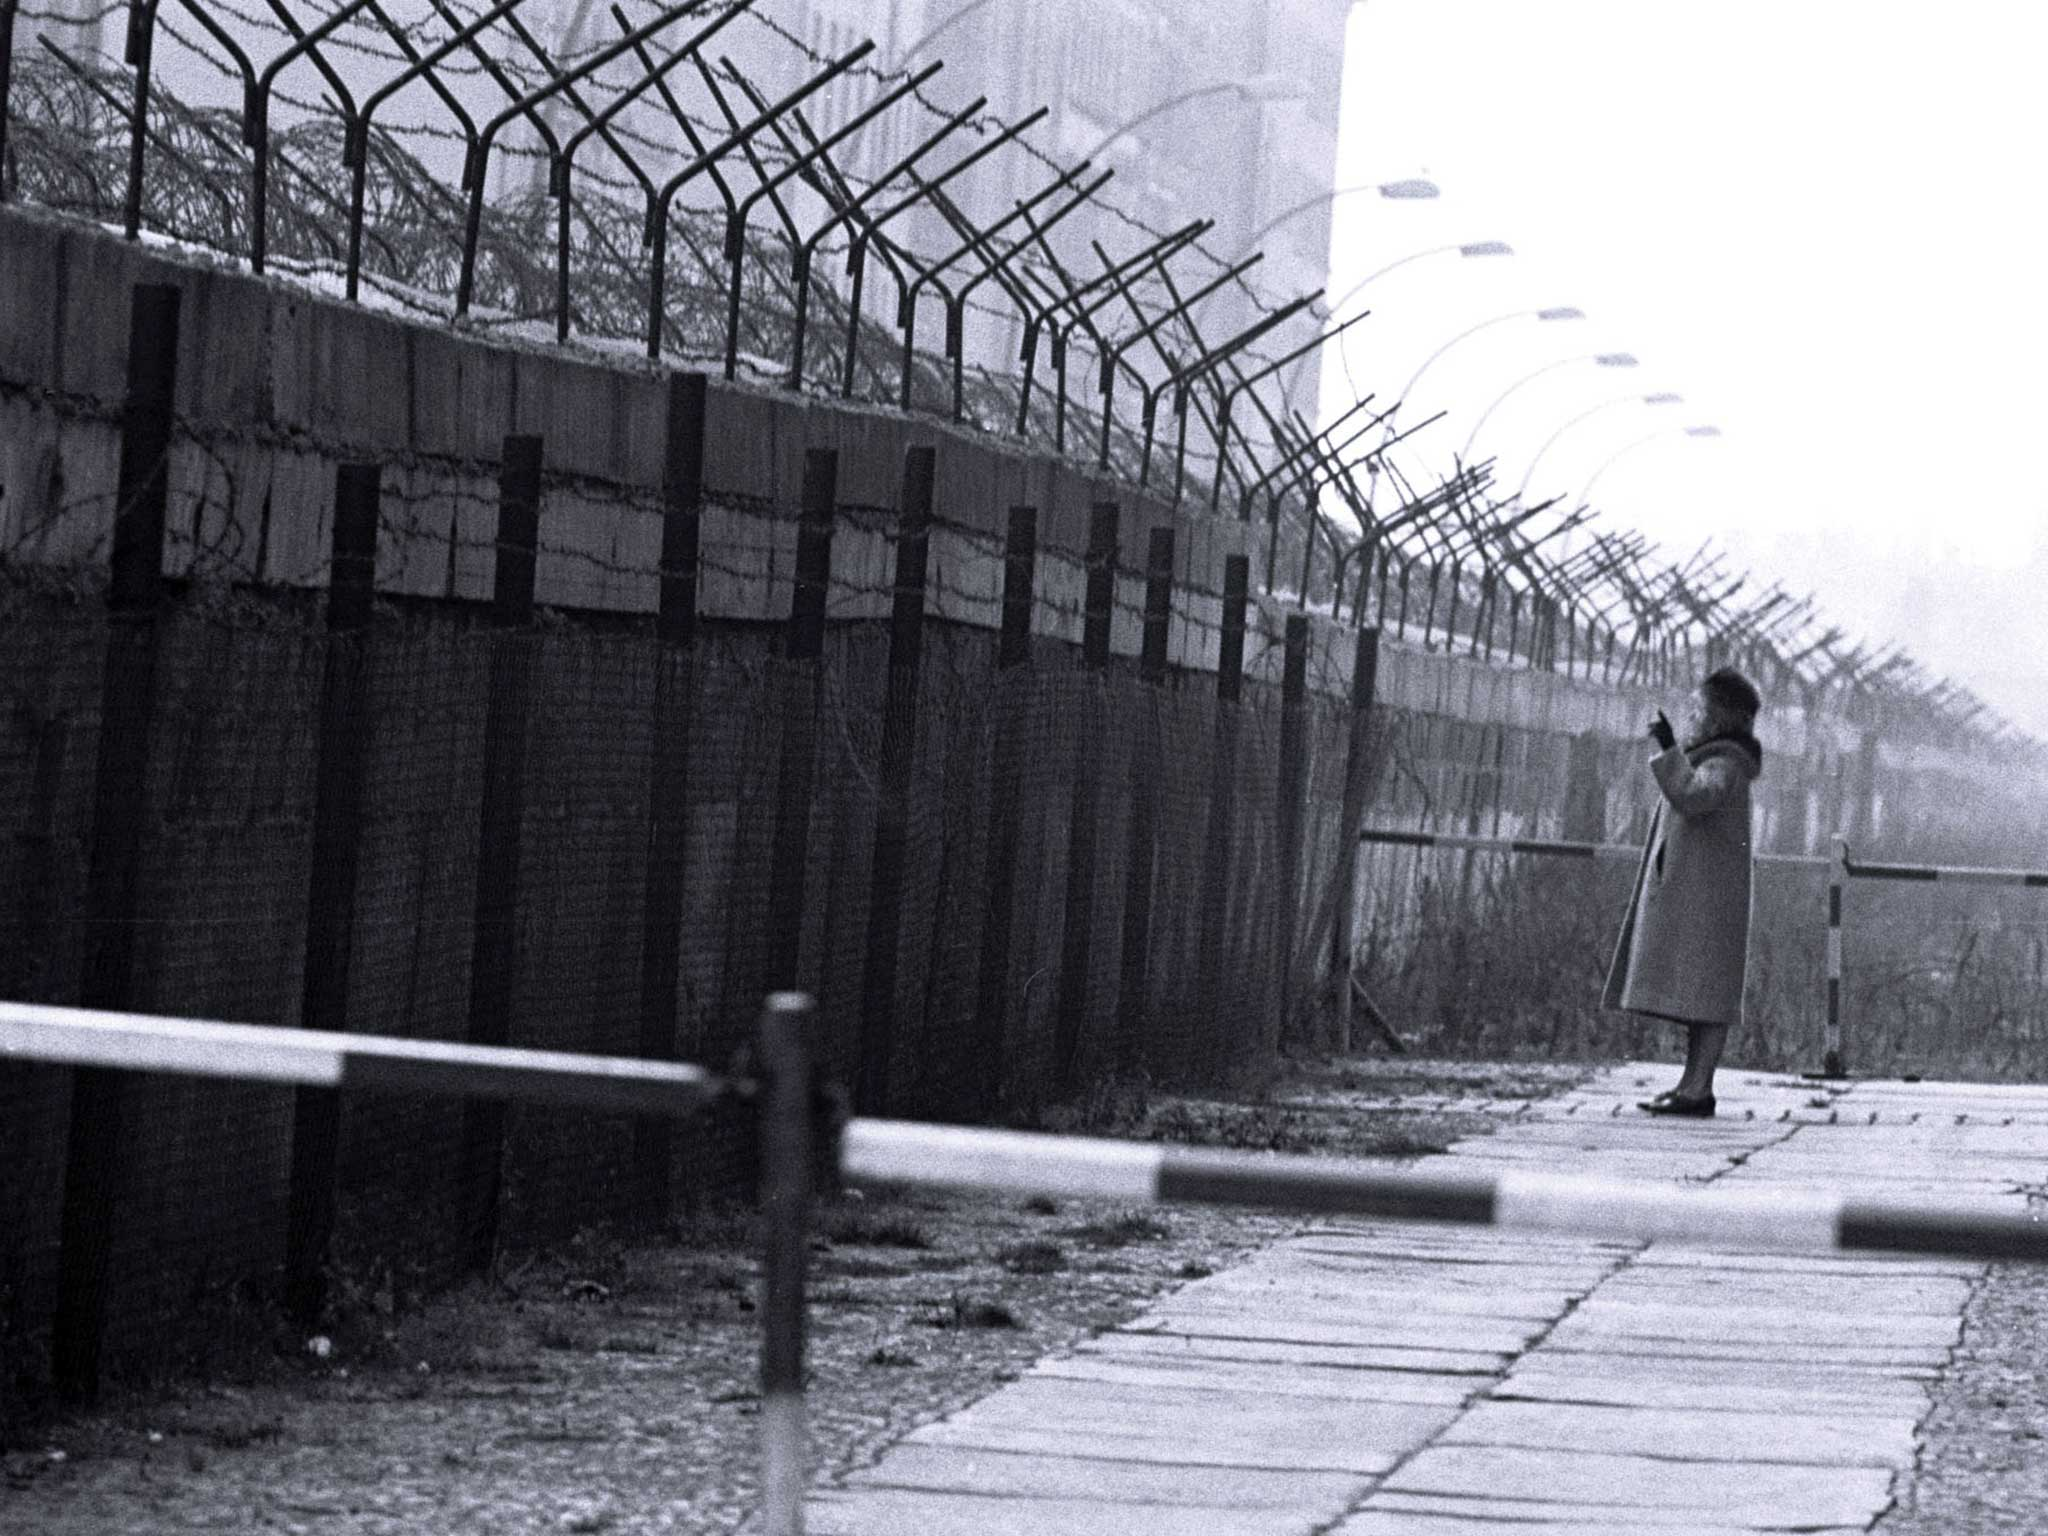 Berlin Wall - latest news, breaking stories and comment